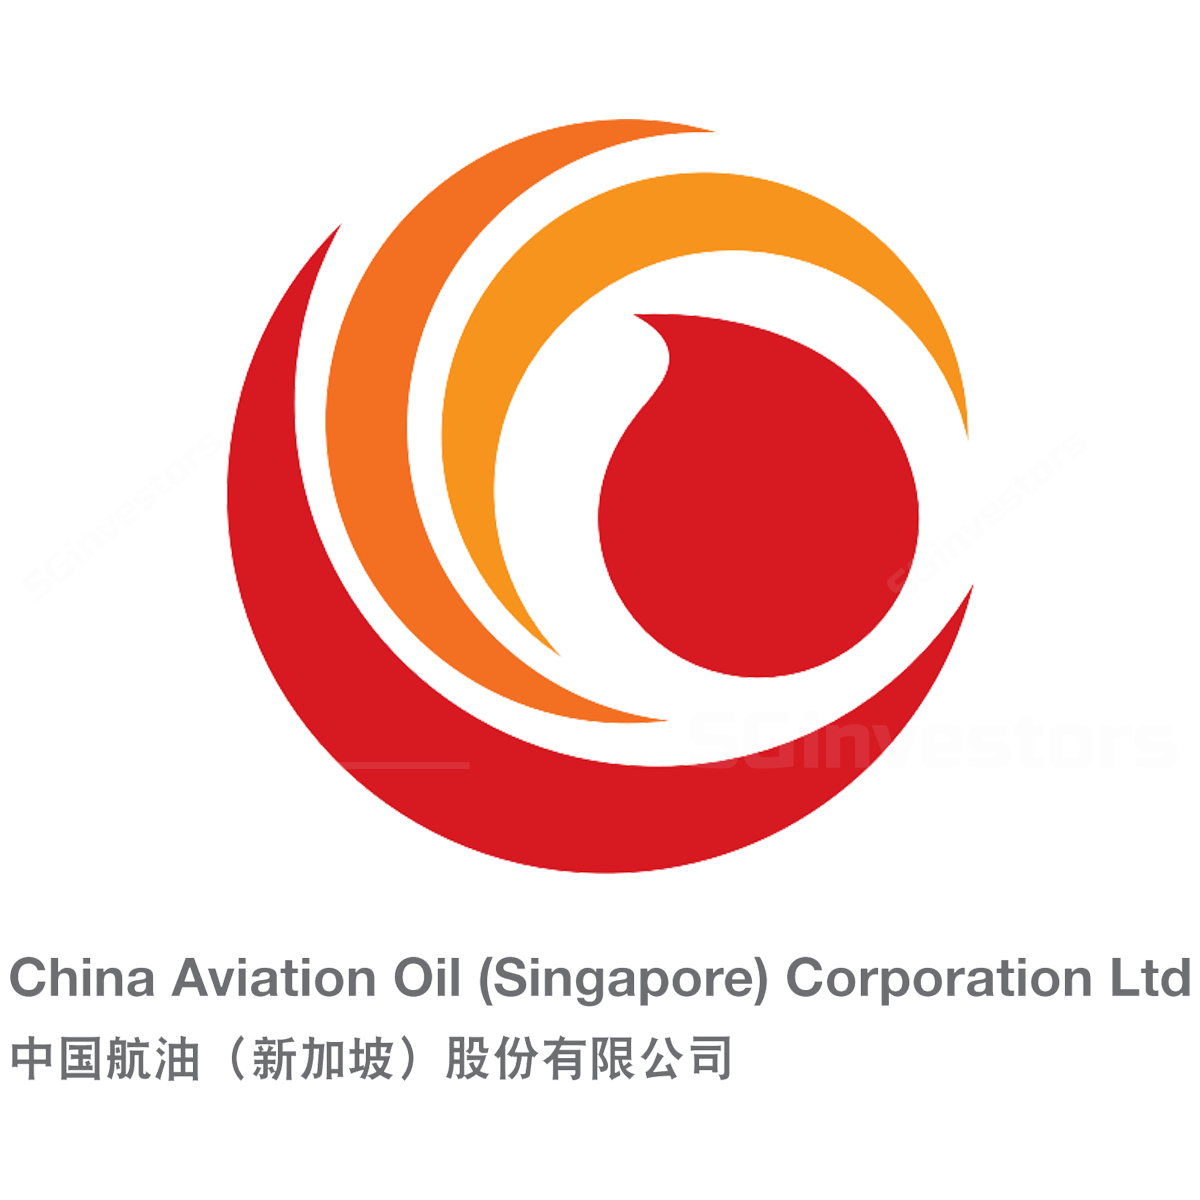 CHINA AVIATION OIL(S) CORP LTD (SGX:G92) | SGinvestors.io